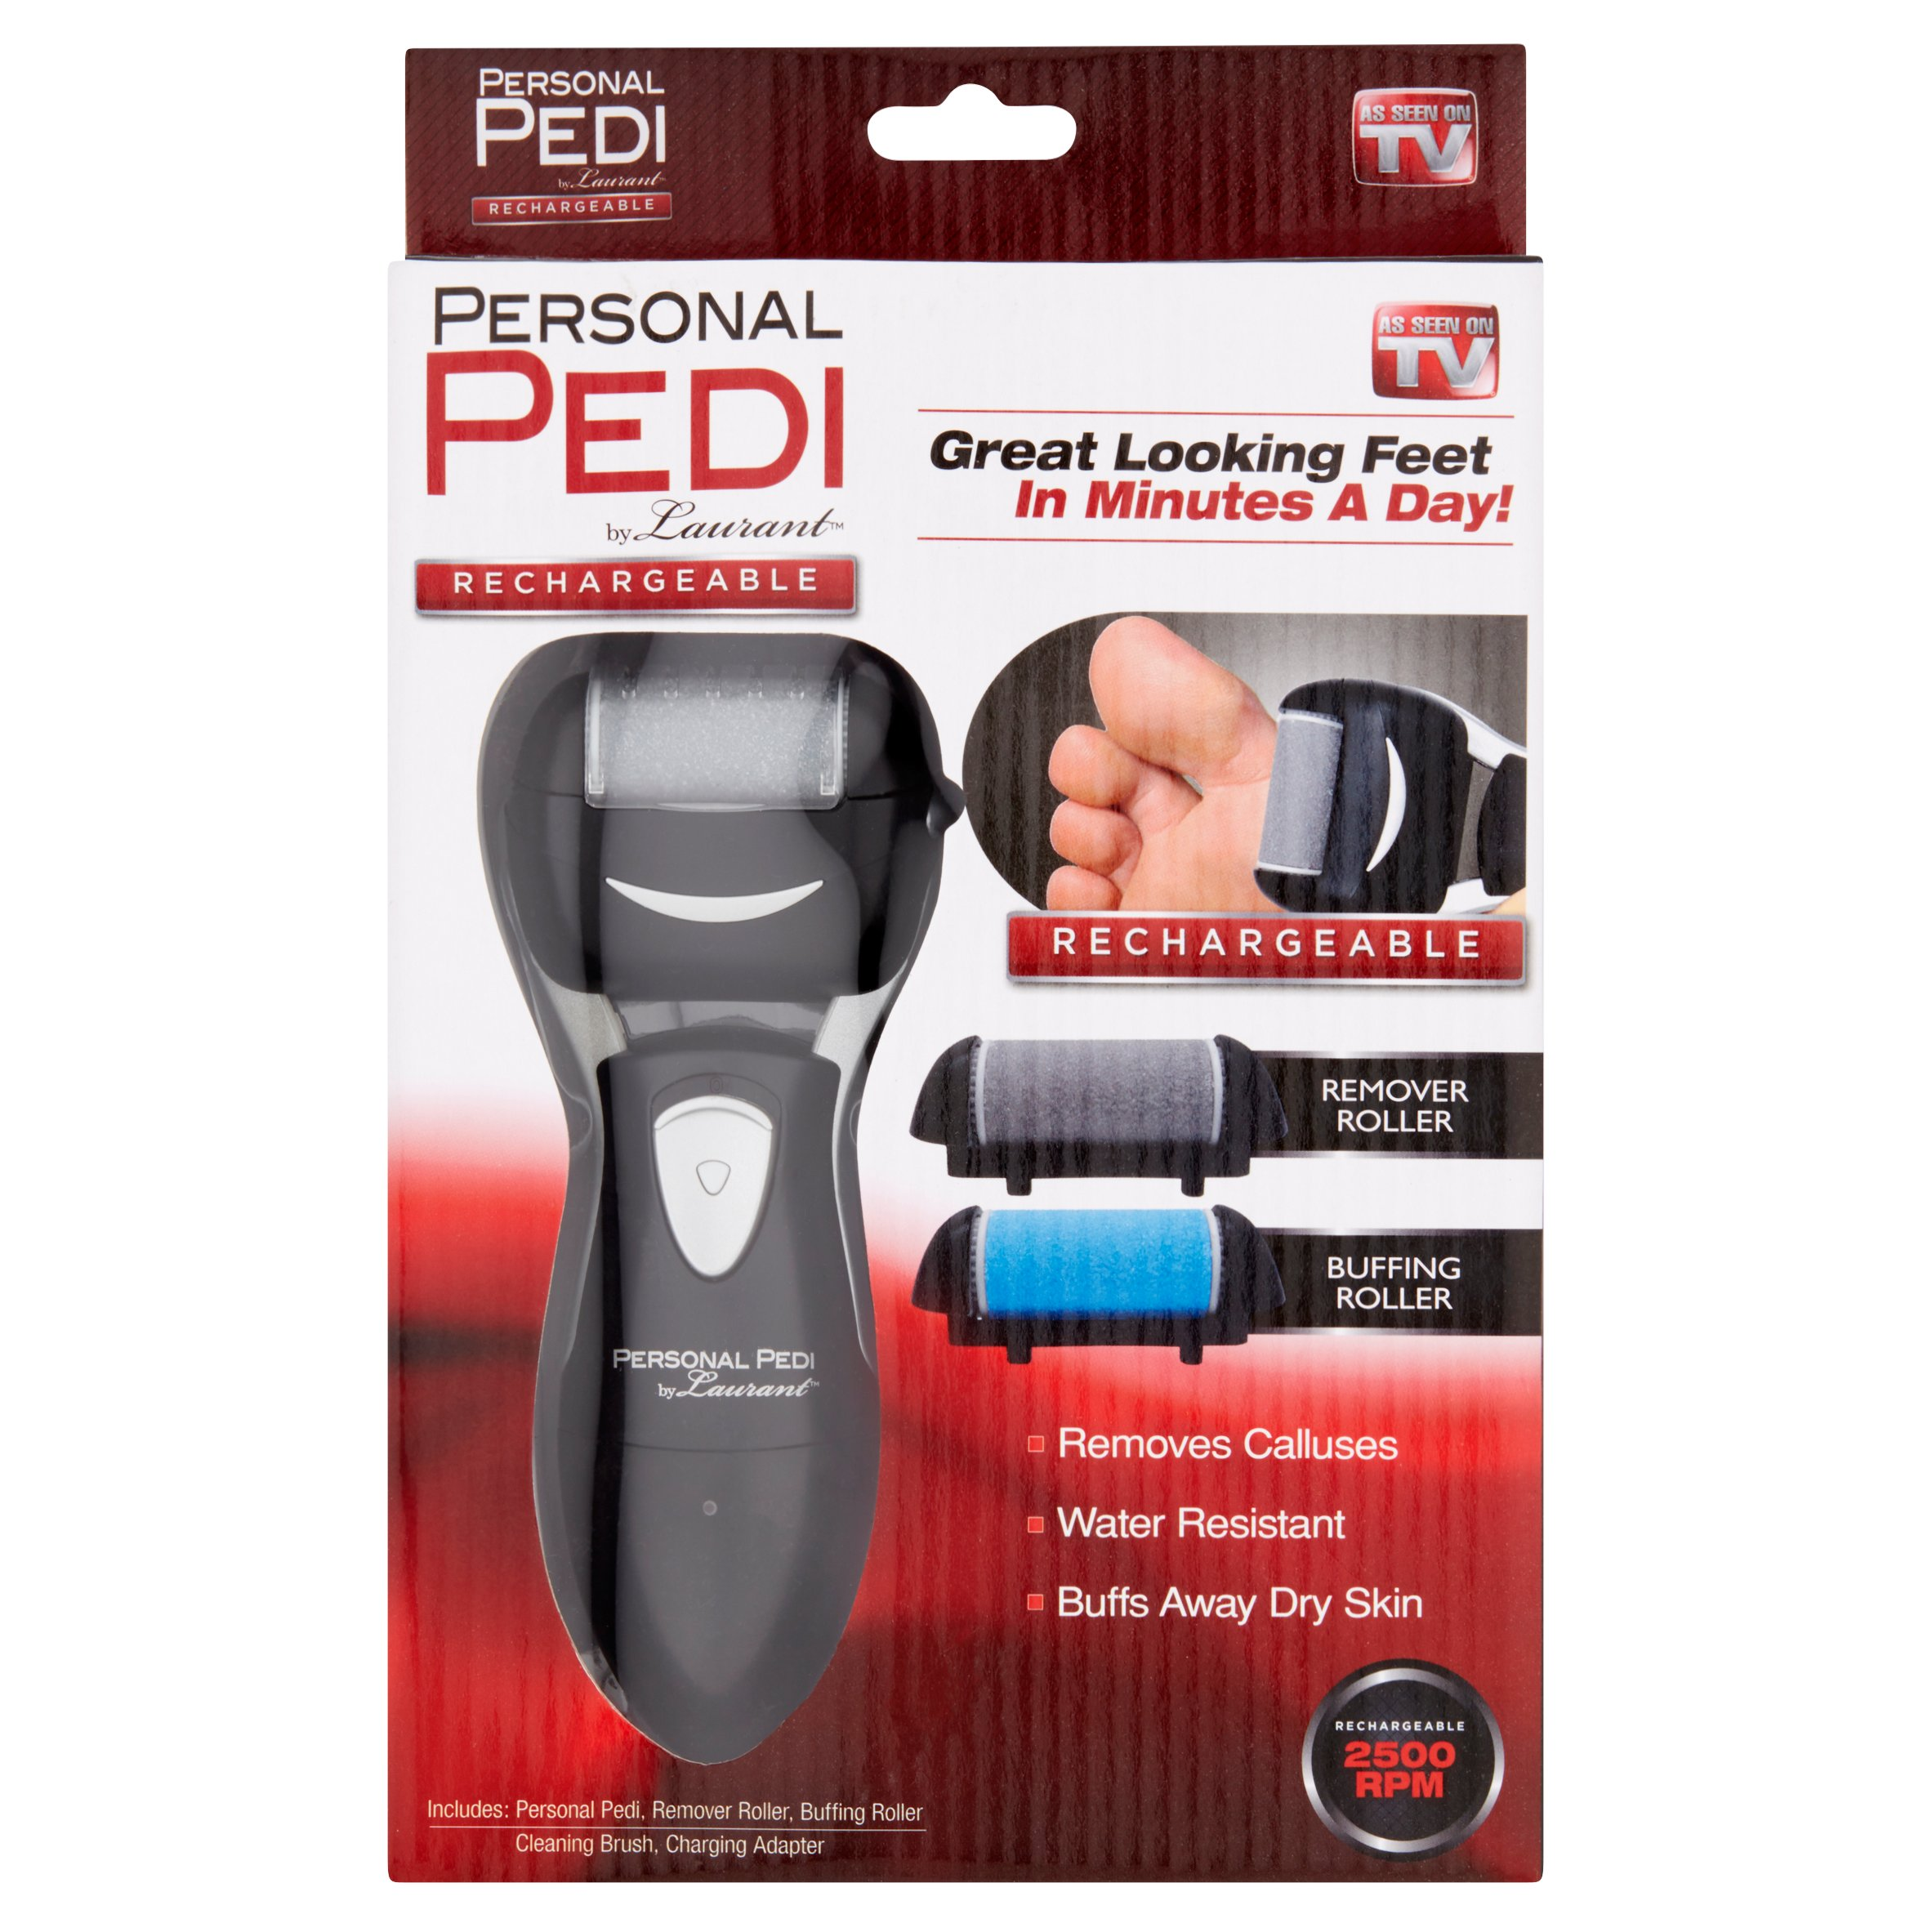 Personal Pedi by Laurant Rechargeable Remover Roller